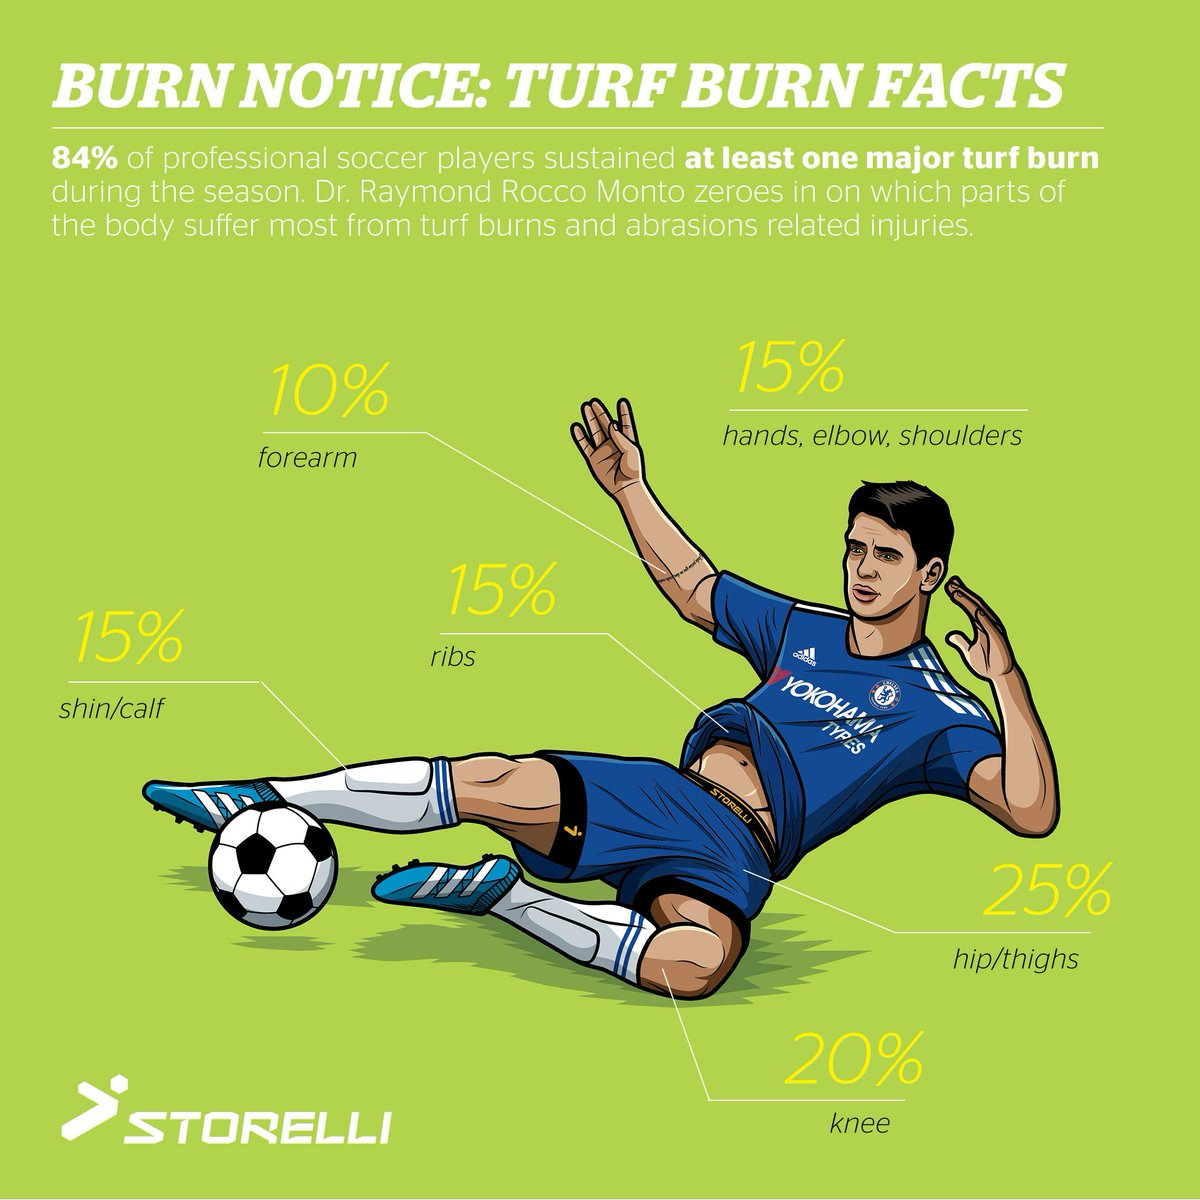 Turf Burn Facts - project yourself and your kids! @storellisports is #YourSecretWeapon https://t.co/hqzJH1xBRf #ad https://t.co/tBZr1H1CFU